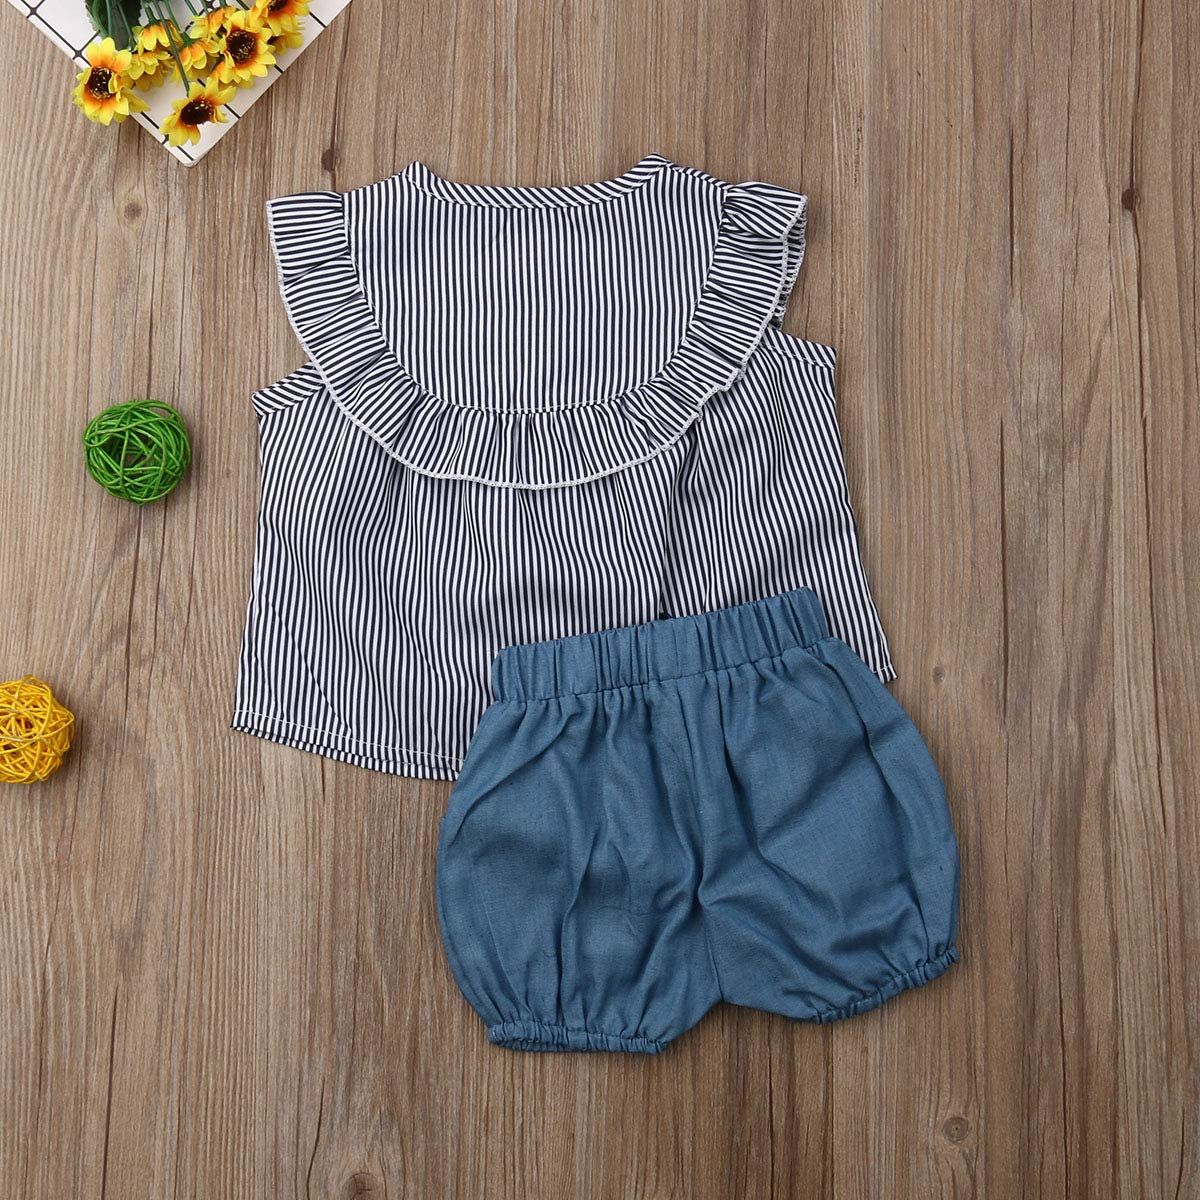 Baby Girls Ruffle Dress Tops Sleeveless Vest Stripe Casual Overall Button Down Romper Short Pants 2PCS Outfits